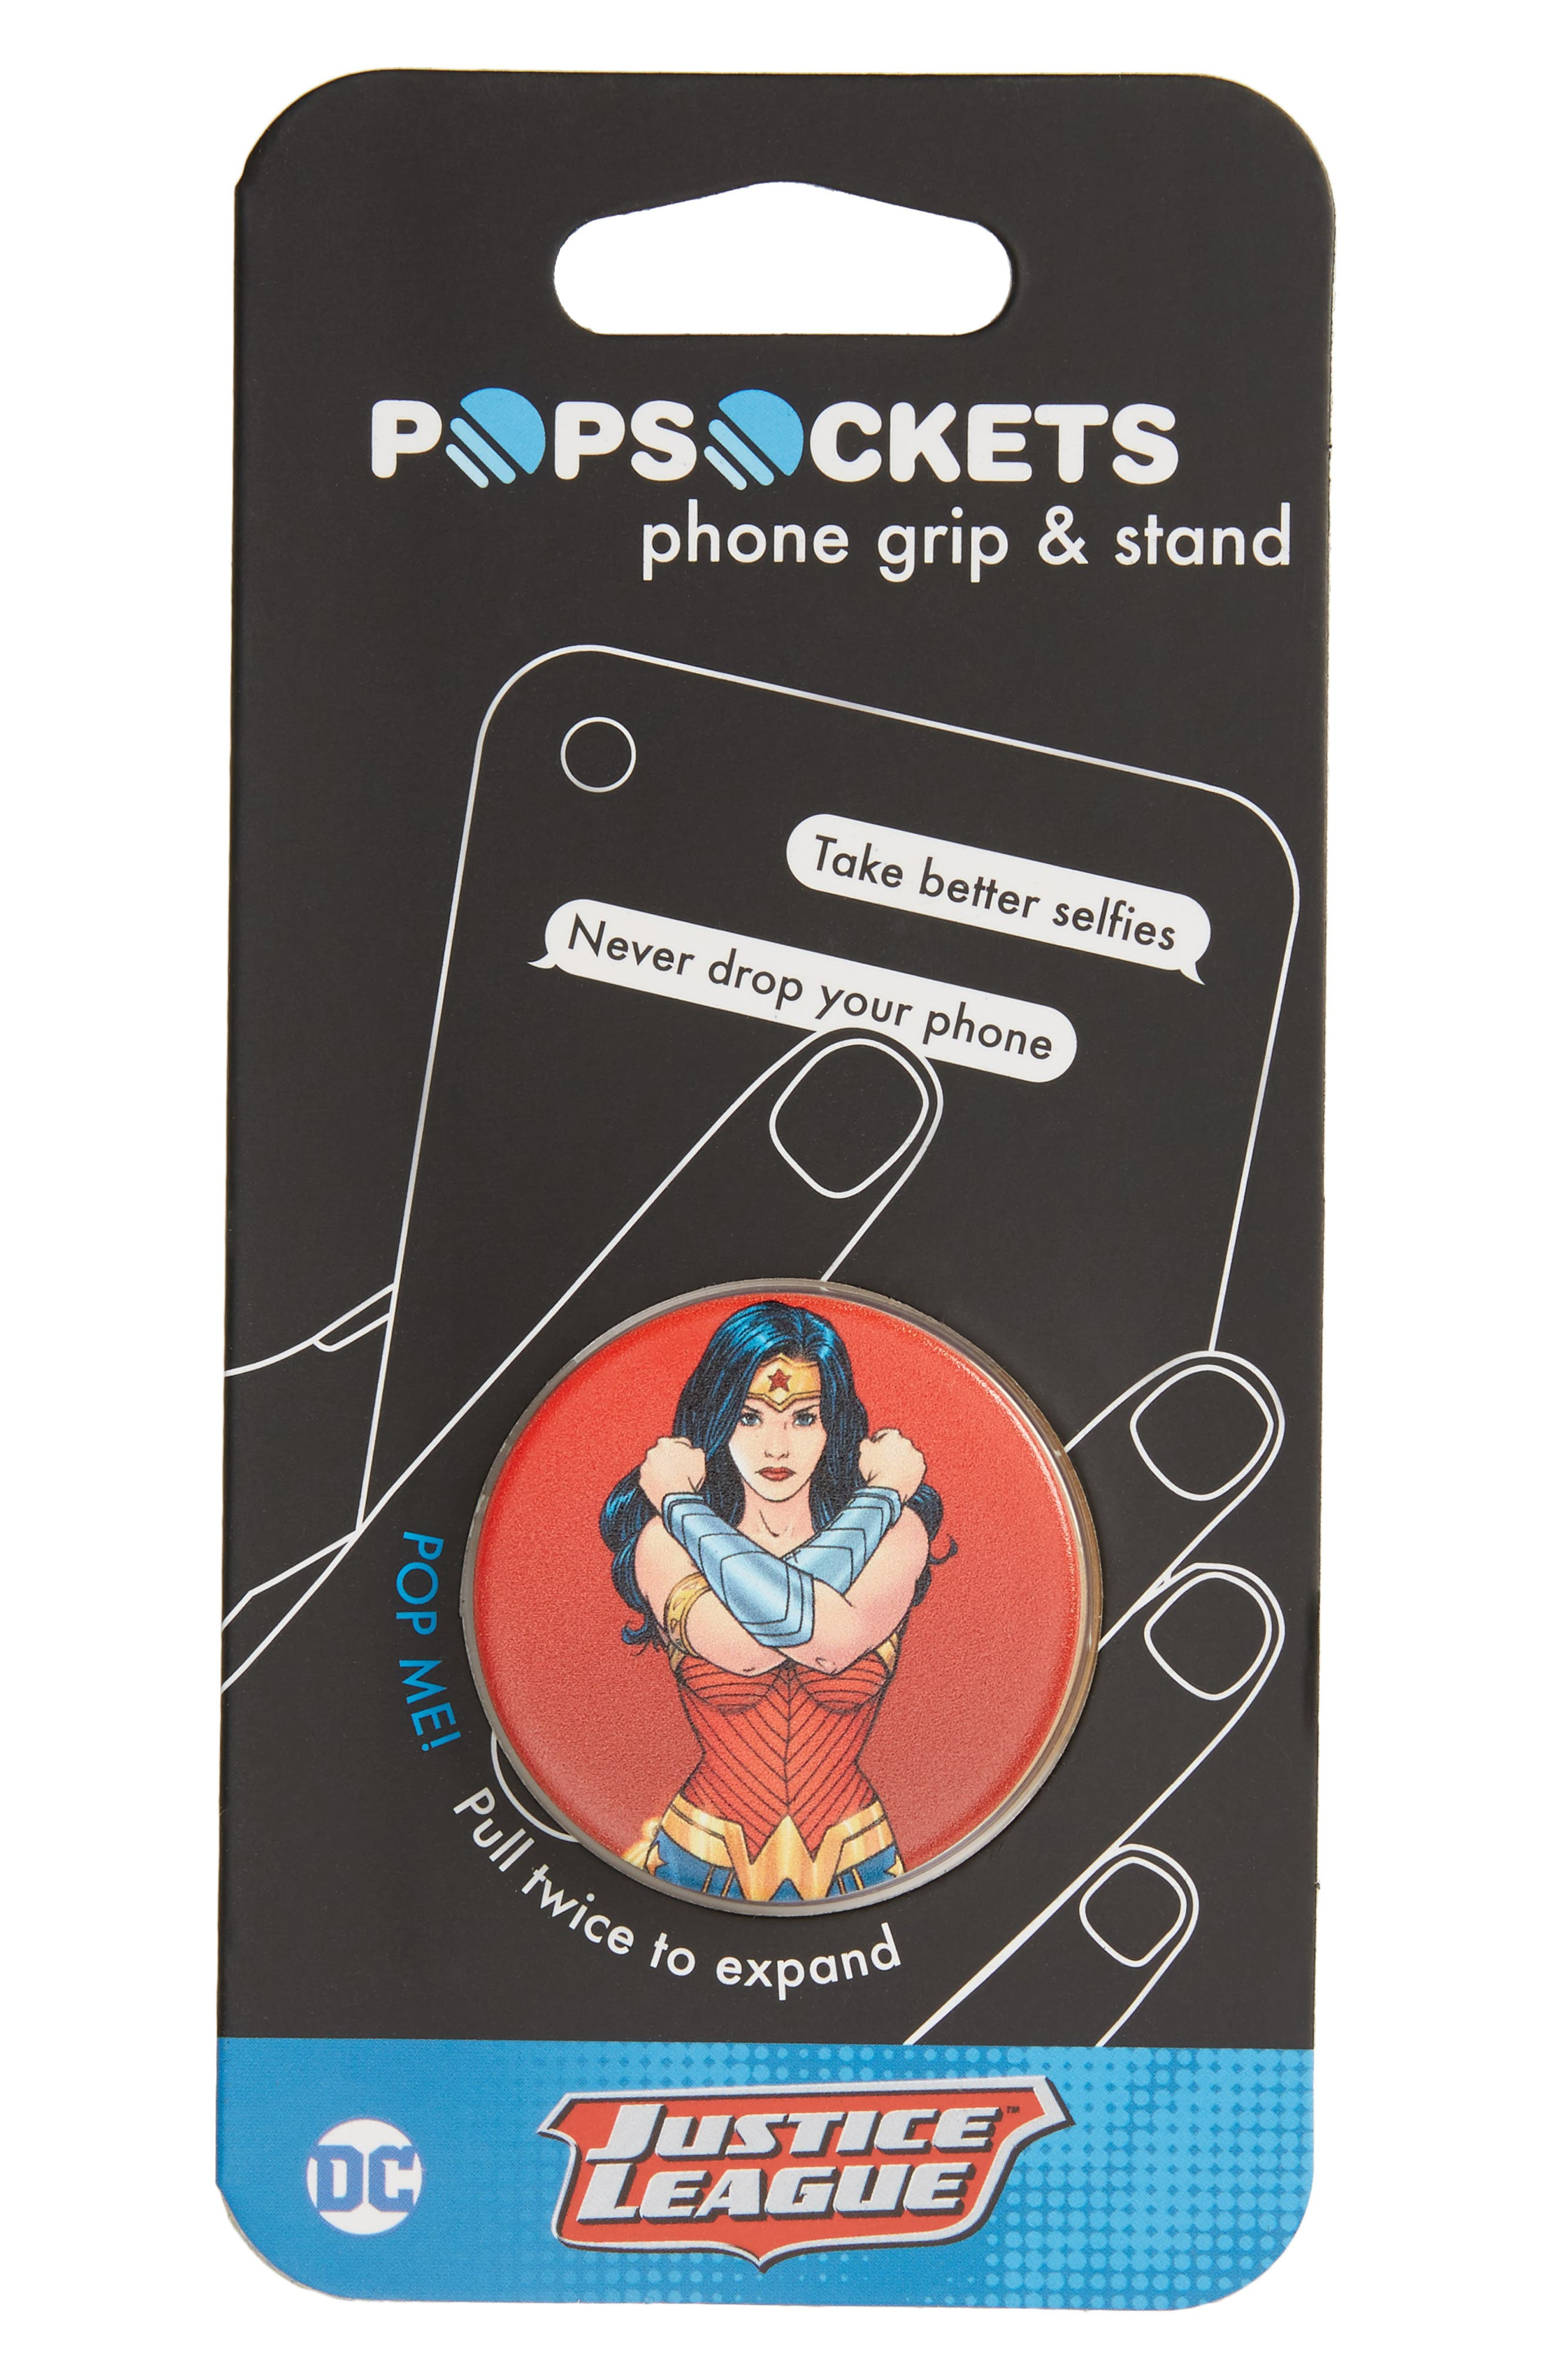 DC Wonder Woman Cell Phone Grip & Stand,                             Main thumbnail 1, color,                             600